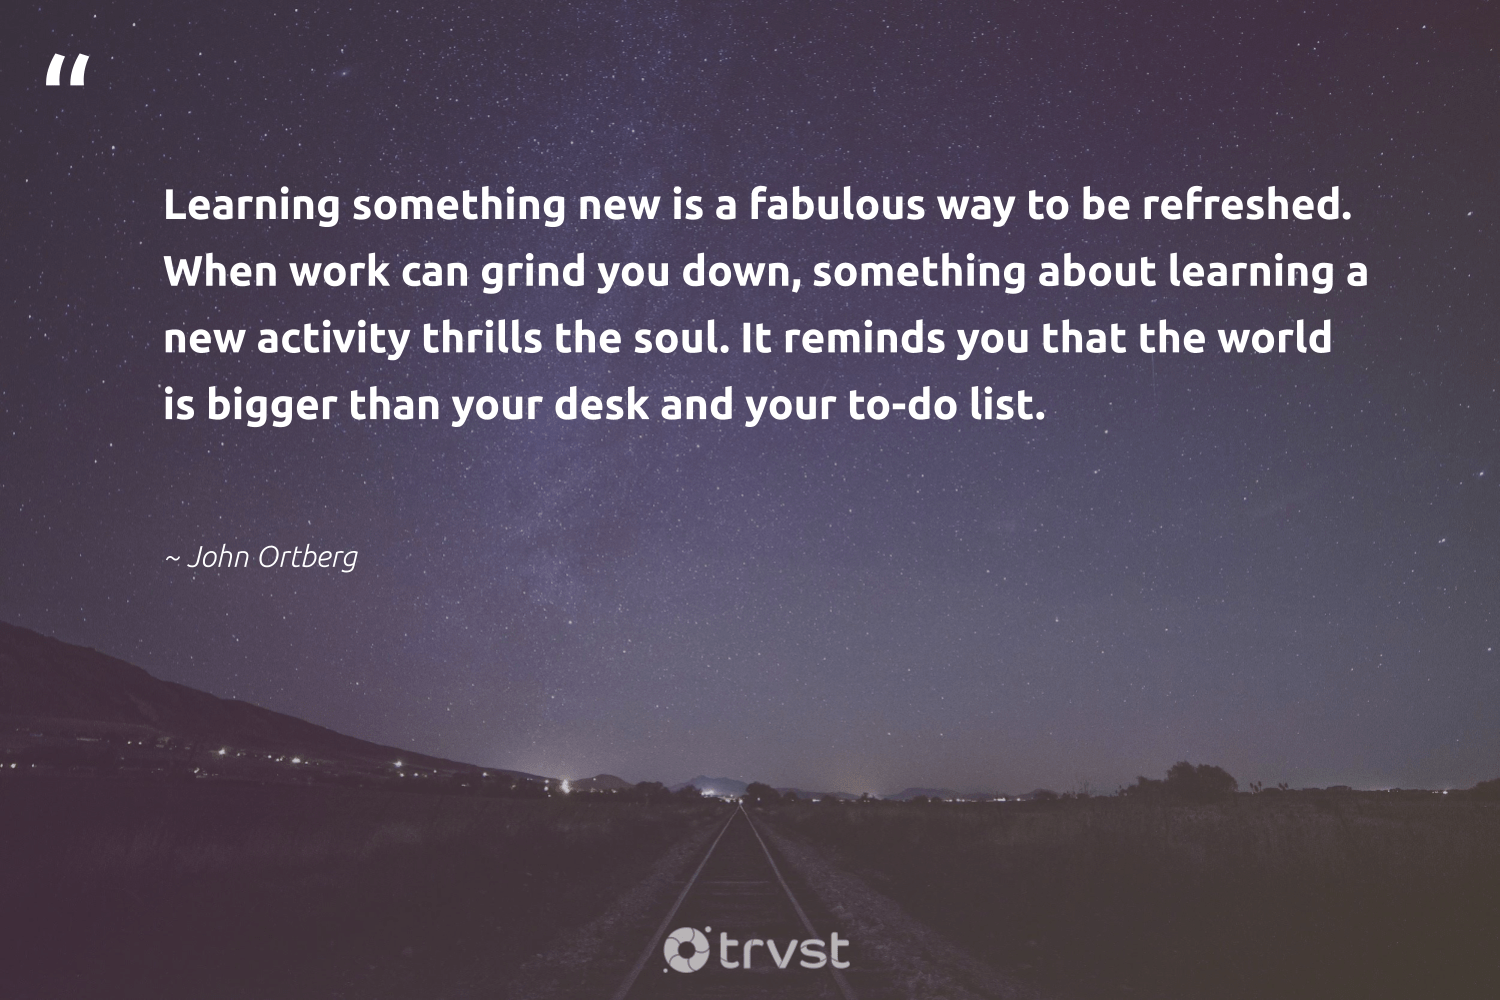 """Learning something new is a fabulous way to be refreshed. When work can grind you down, something about learning a new activity thrills the soul. It reminds you that the world is bigger than your desk and your to-do list.""  - John Ortberg #trvst #quotes #softskills #planetearthfirst #nevergiveup #impact #begreat #collectiveaction #futureofwork #dotherightthing #thinkgreen #socialimpact"